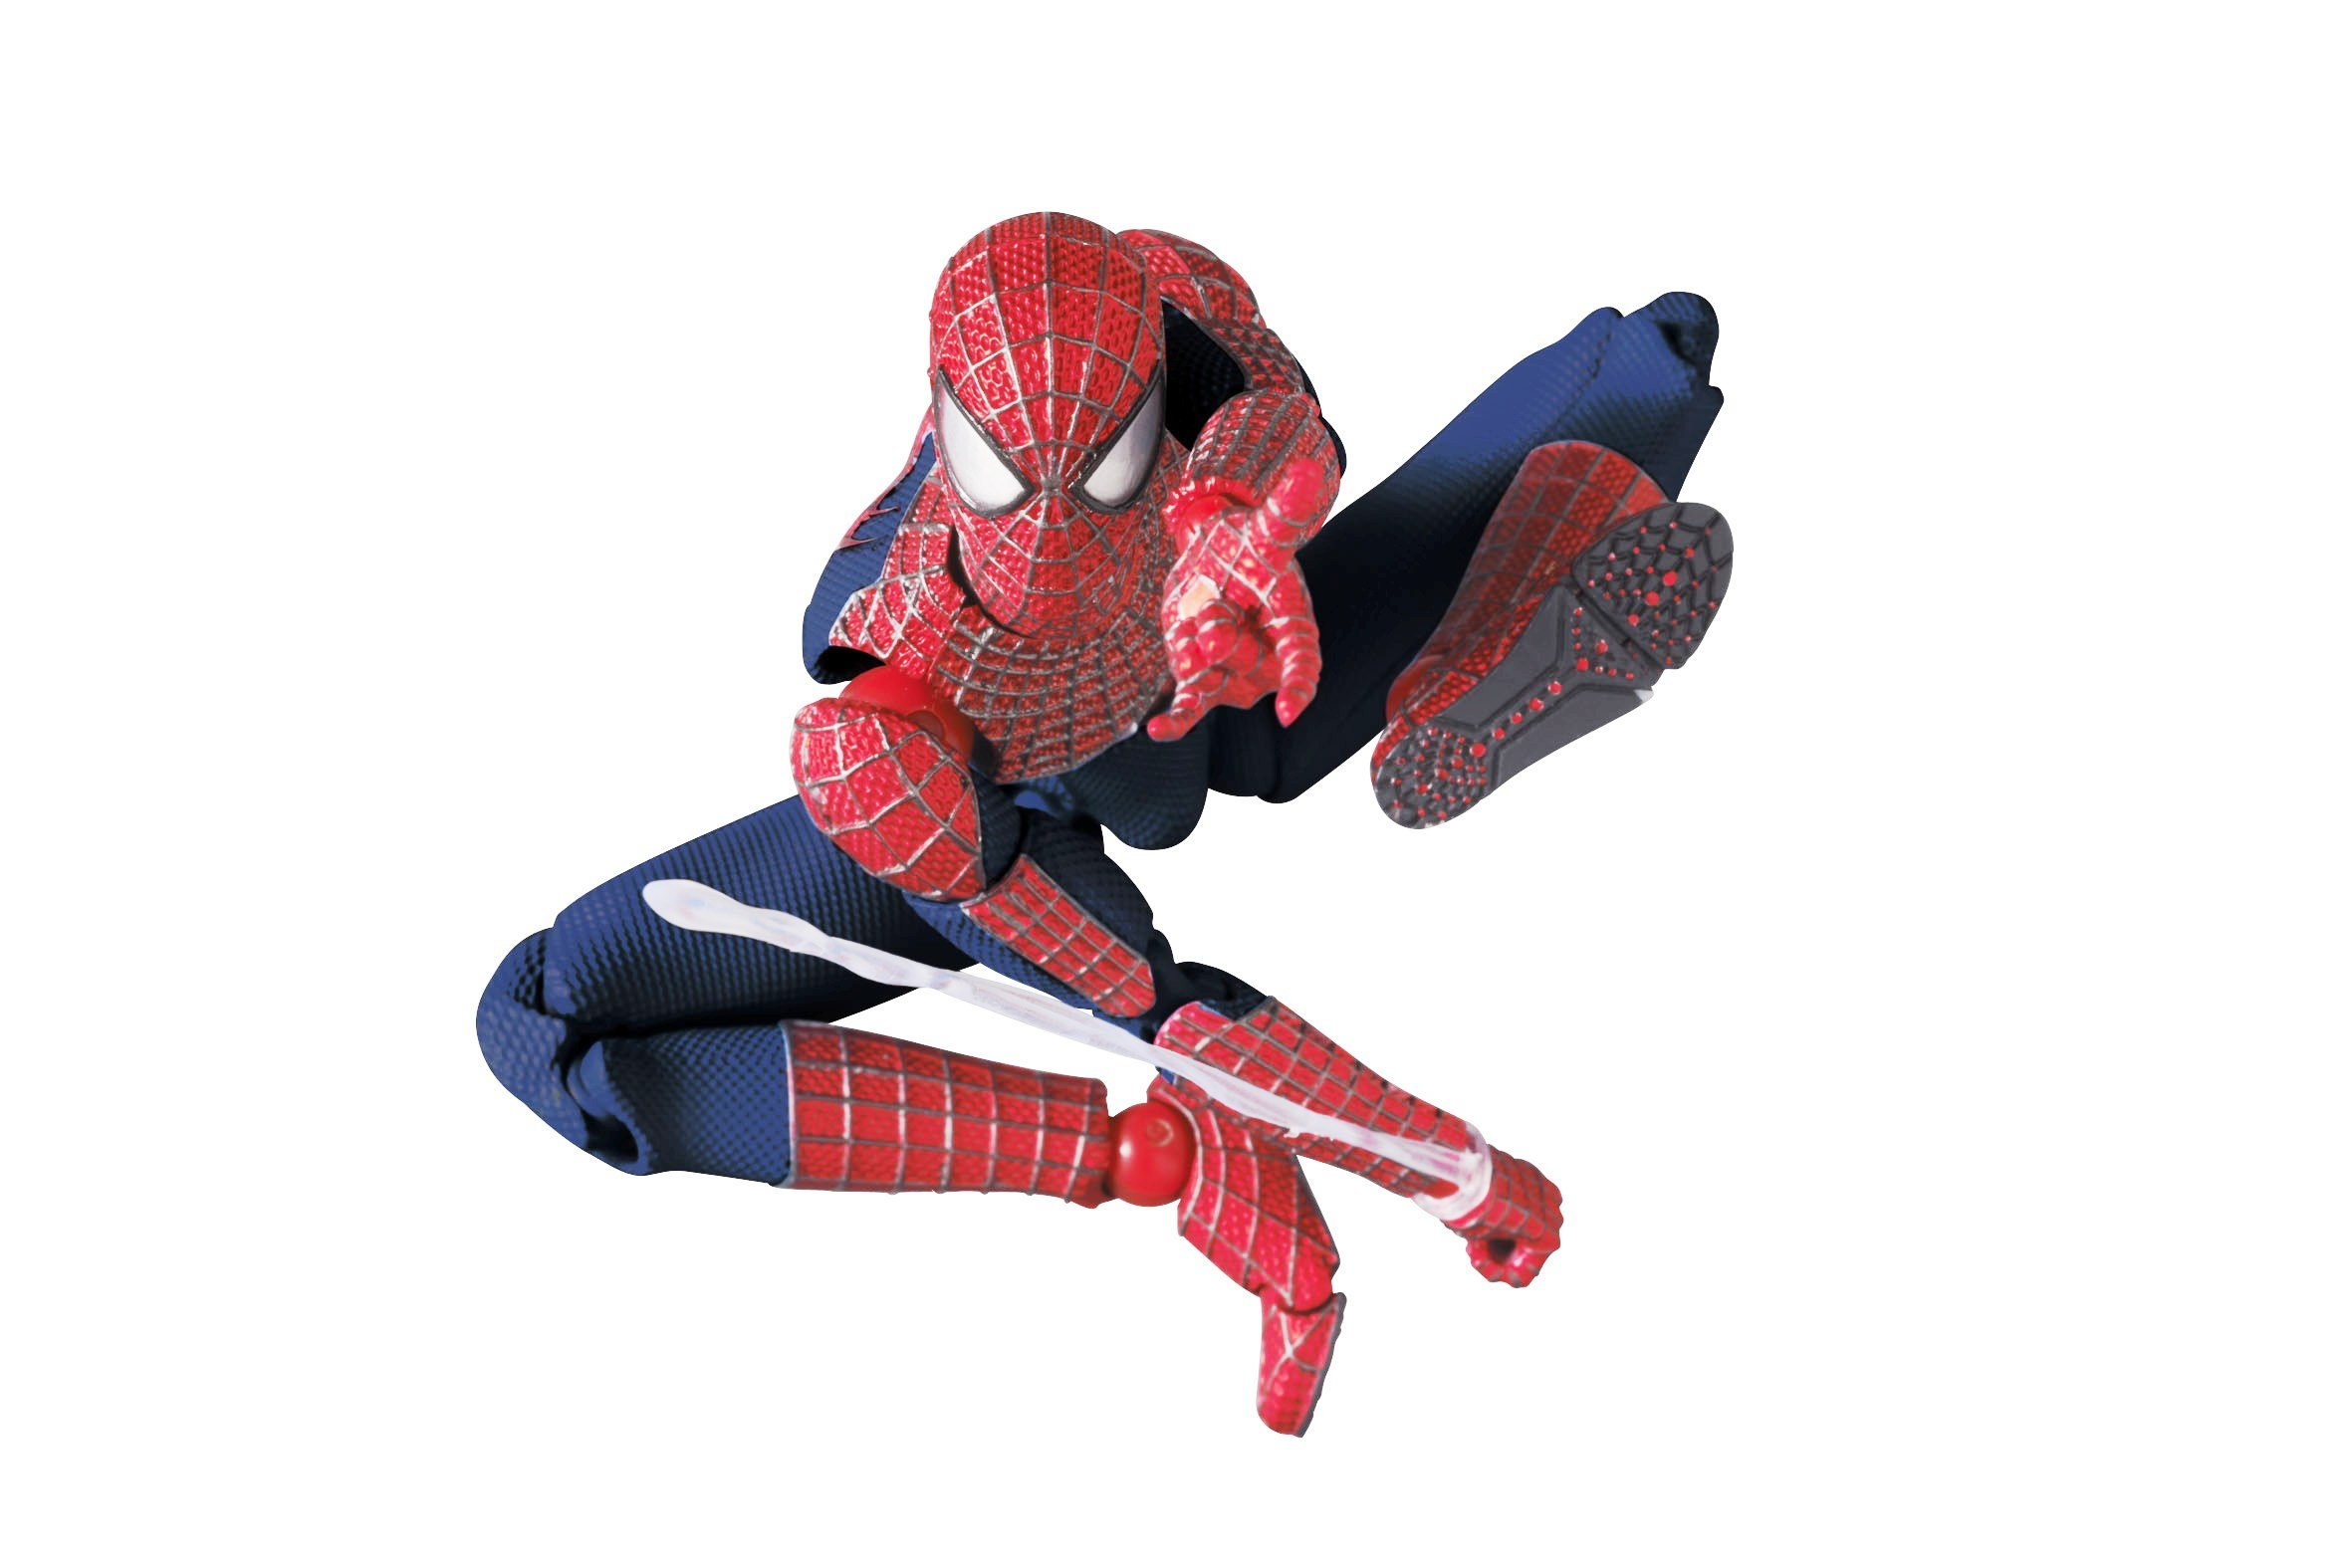 """IN STOCK USA SELLER Medicom Toys Mafex Spider-Man Carnage 6/"""" Action Figure"""